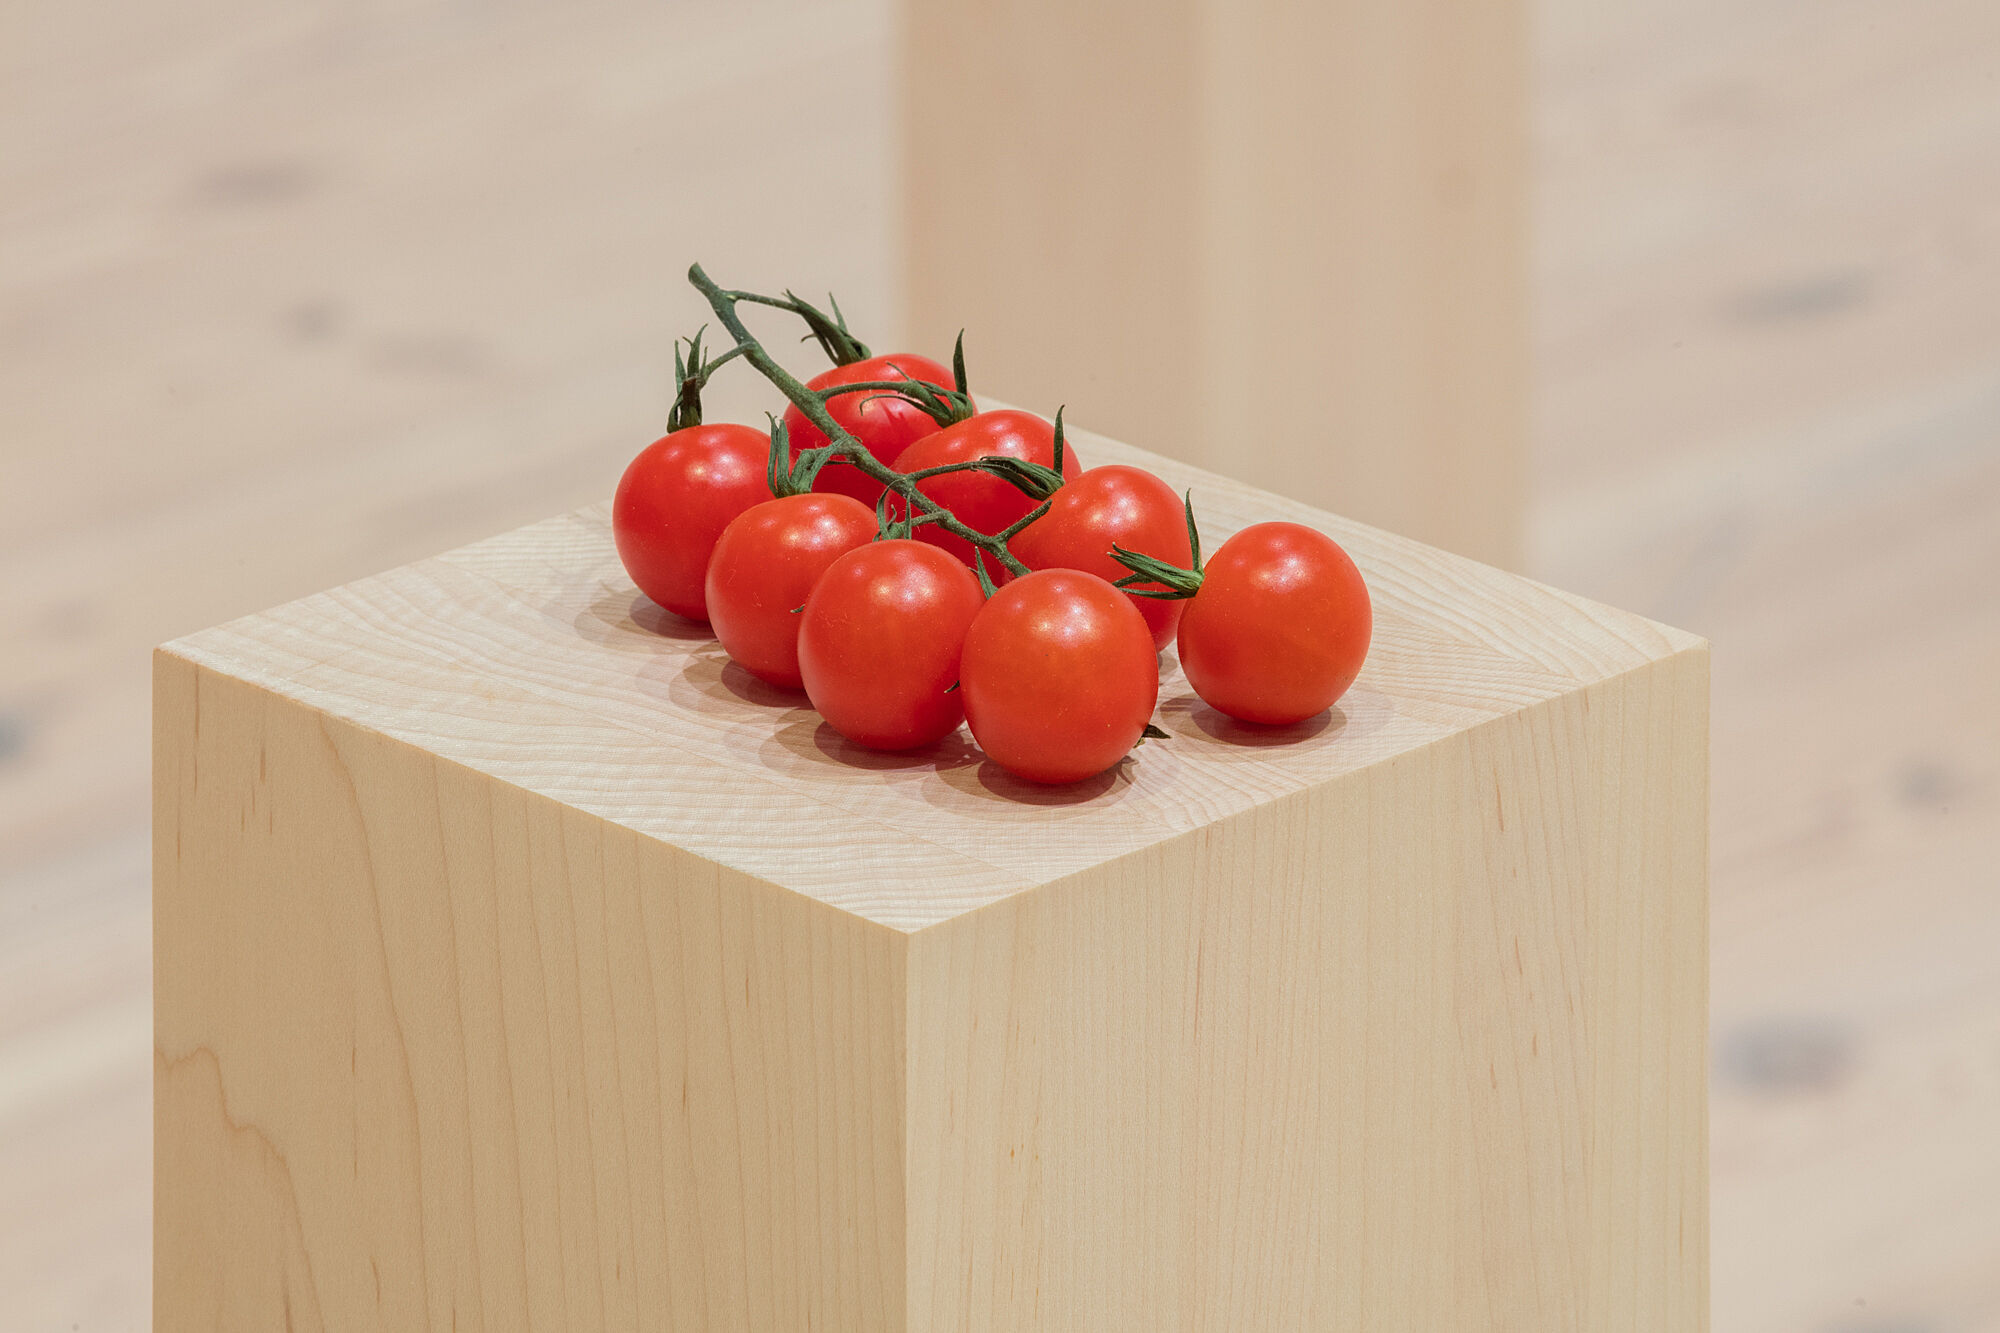 A photo of cherry tomatoes on a plinth.